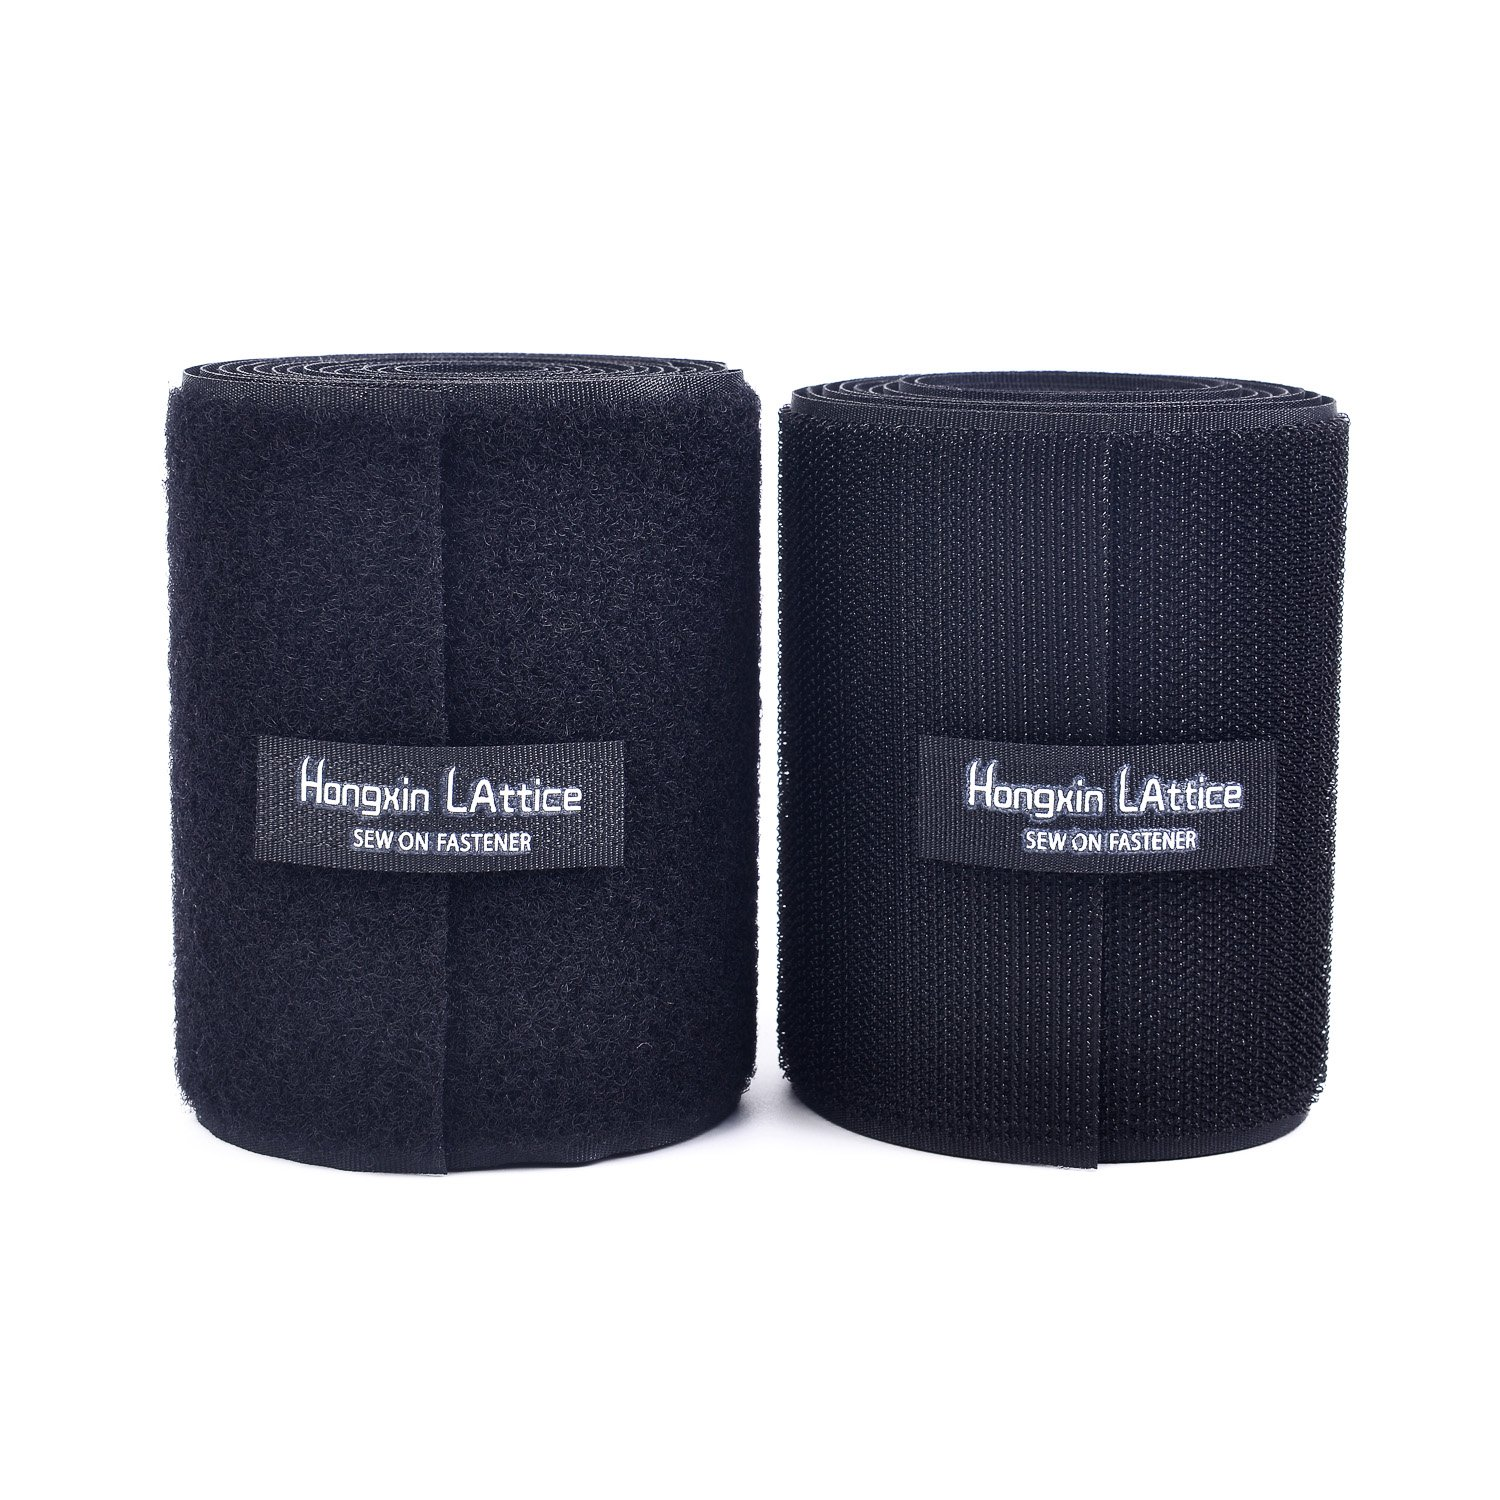 10CM Wide(Approx 4'') 2 Meter Long Sew On Hook and Loop Strips Set with Non-Adhesive Back Nylon Fabric Fastener Black by Hongxin LAttice